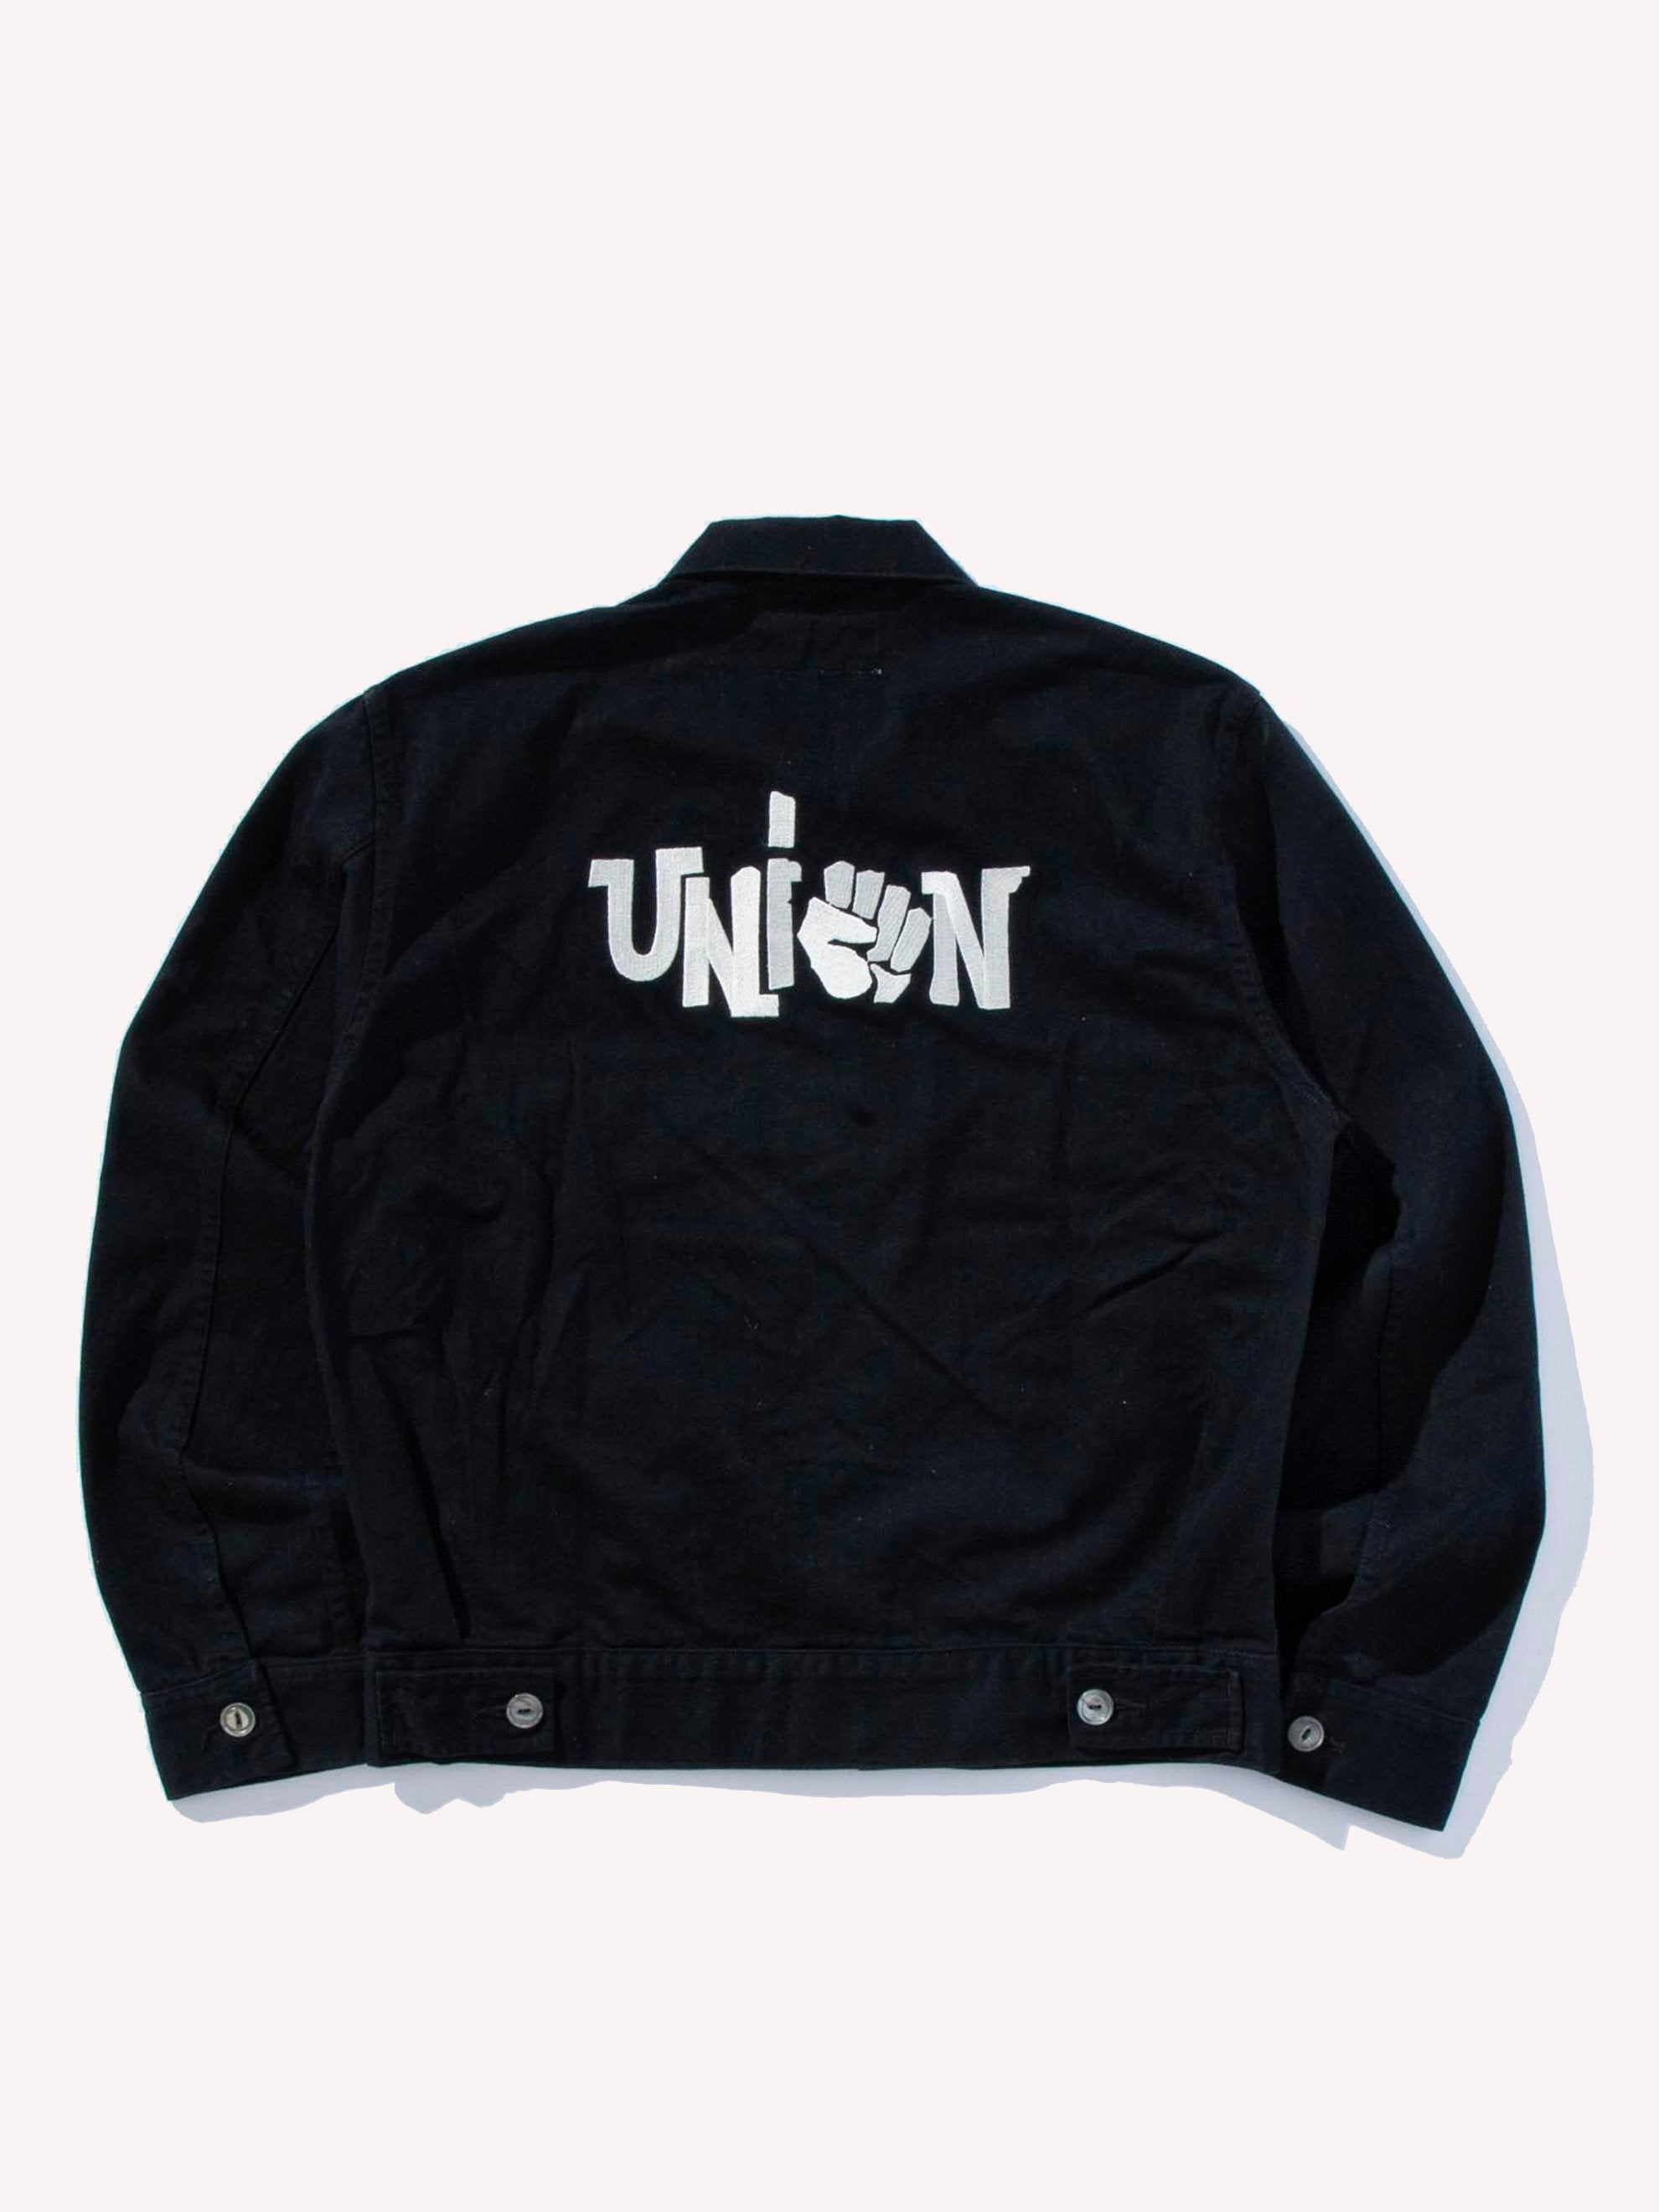 Black Thee Union Jacket 1